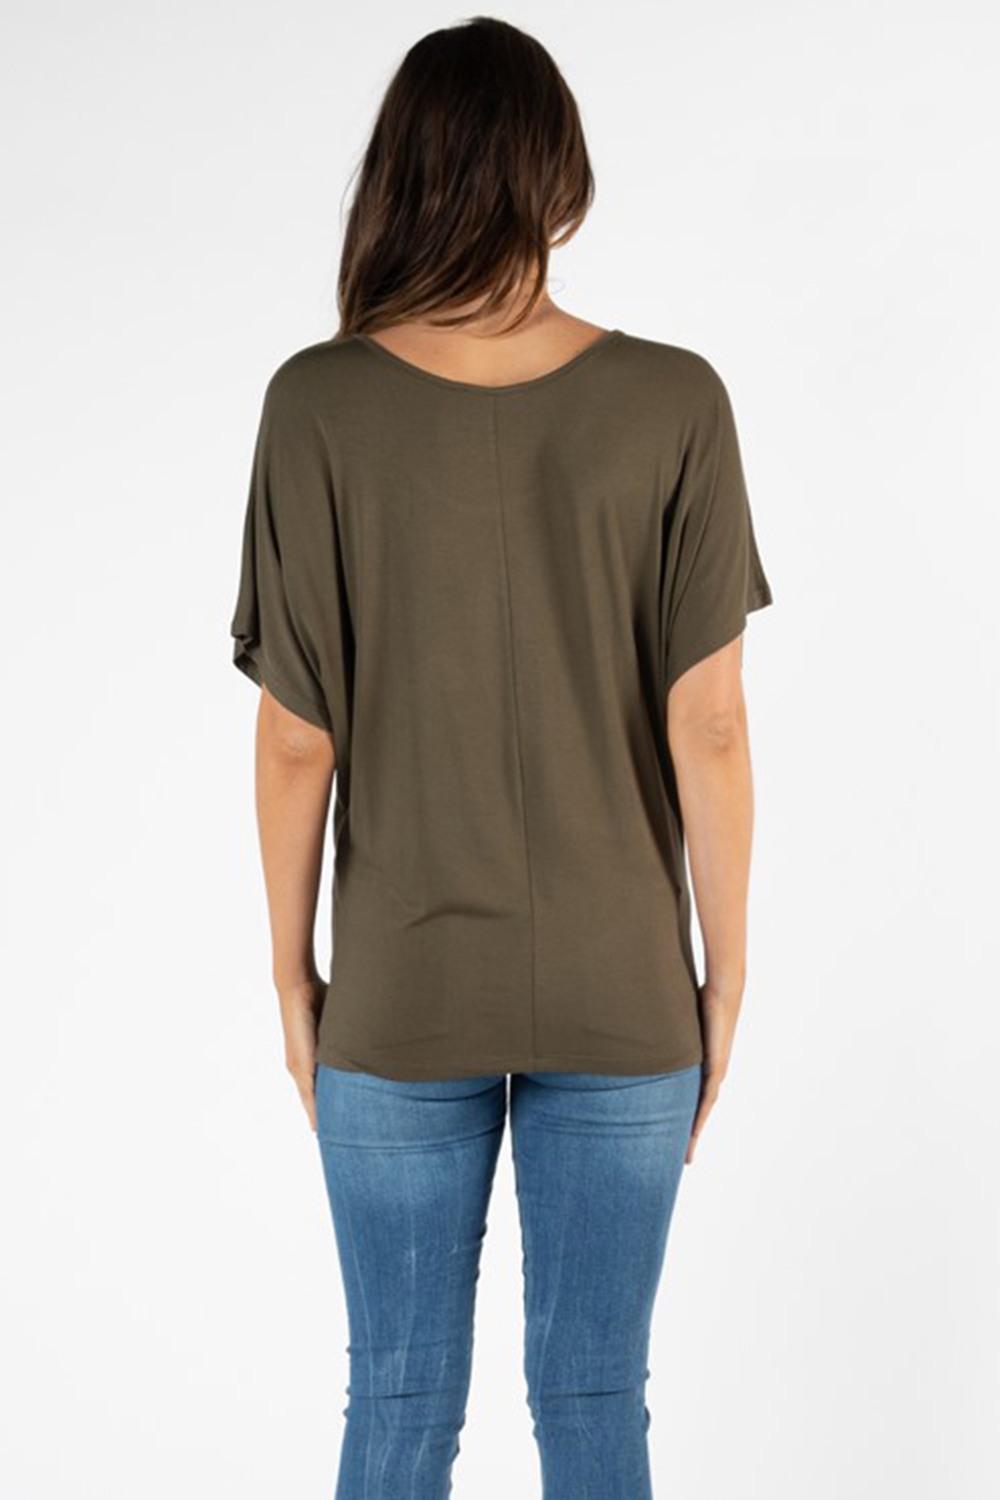 Maui Tee by Betty Basics - Khaki